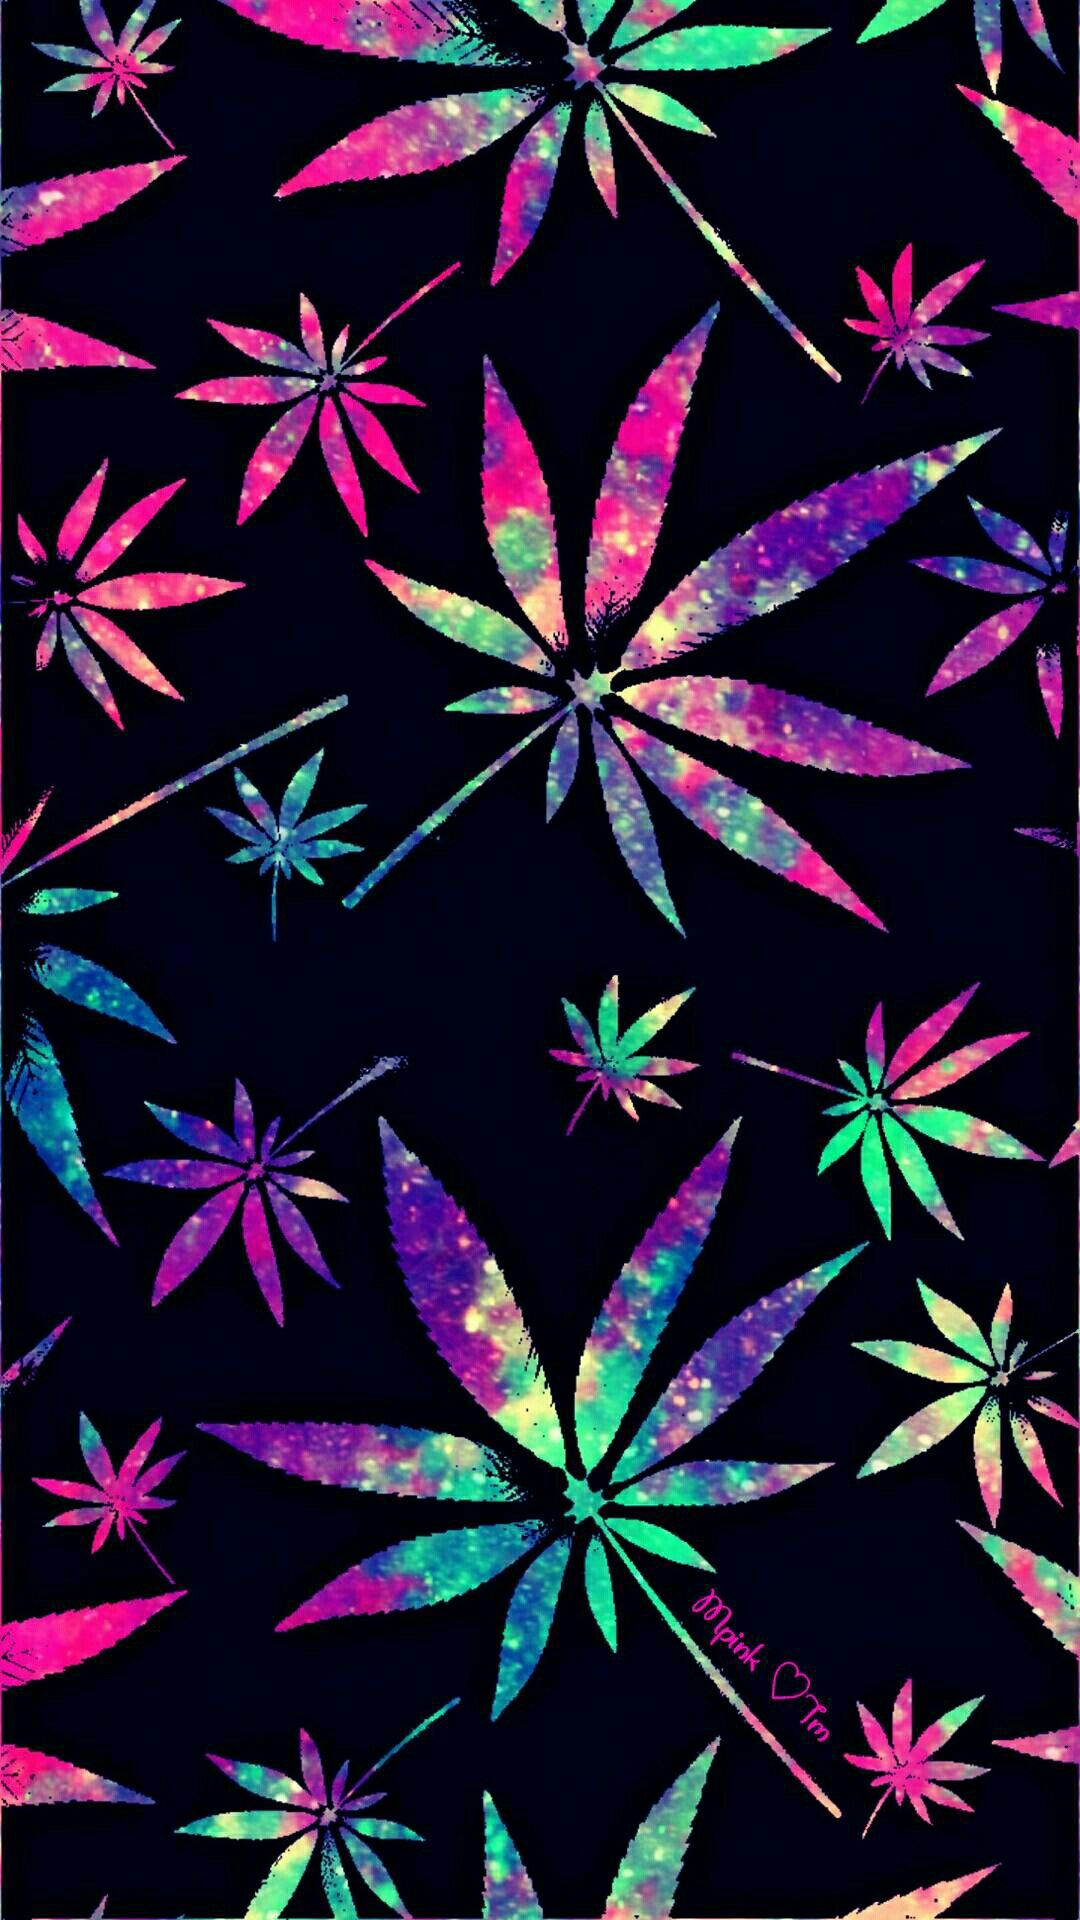 Weed Phone Wallpaper Best Phone Wallpaper Images Shiny Galaxy Weed 2932434 Hd Wallpaper Backgrounds Download